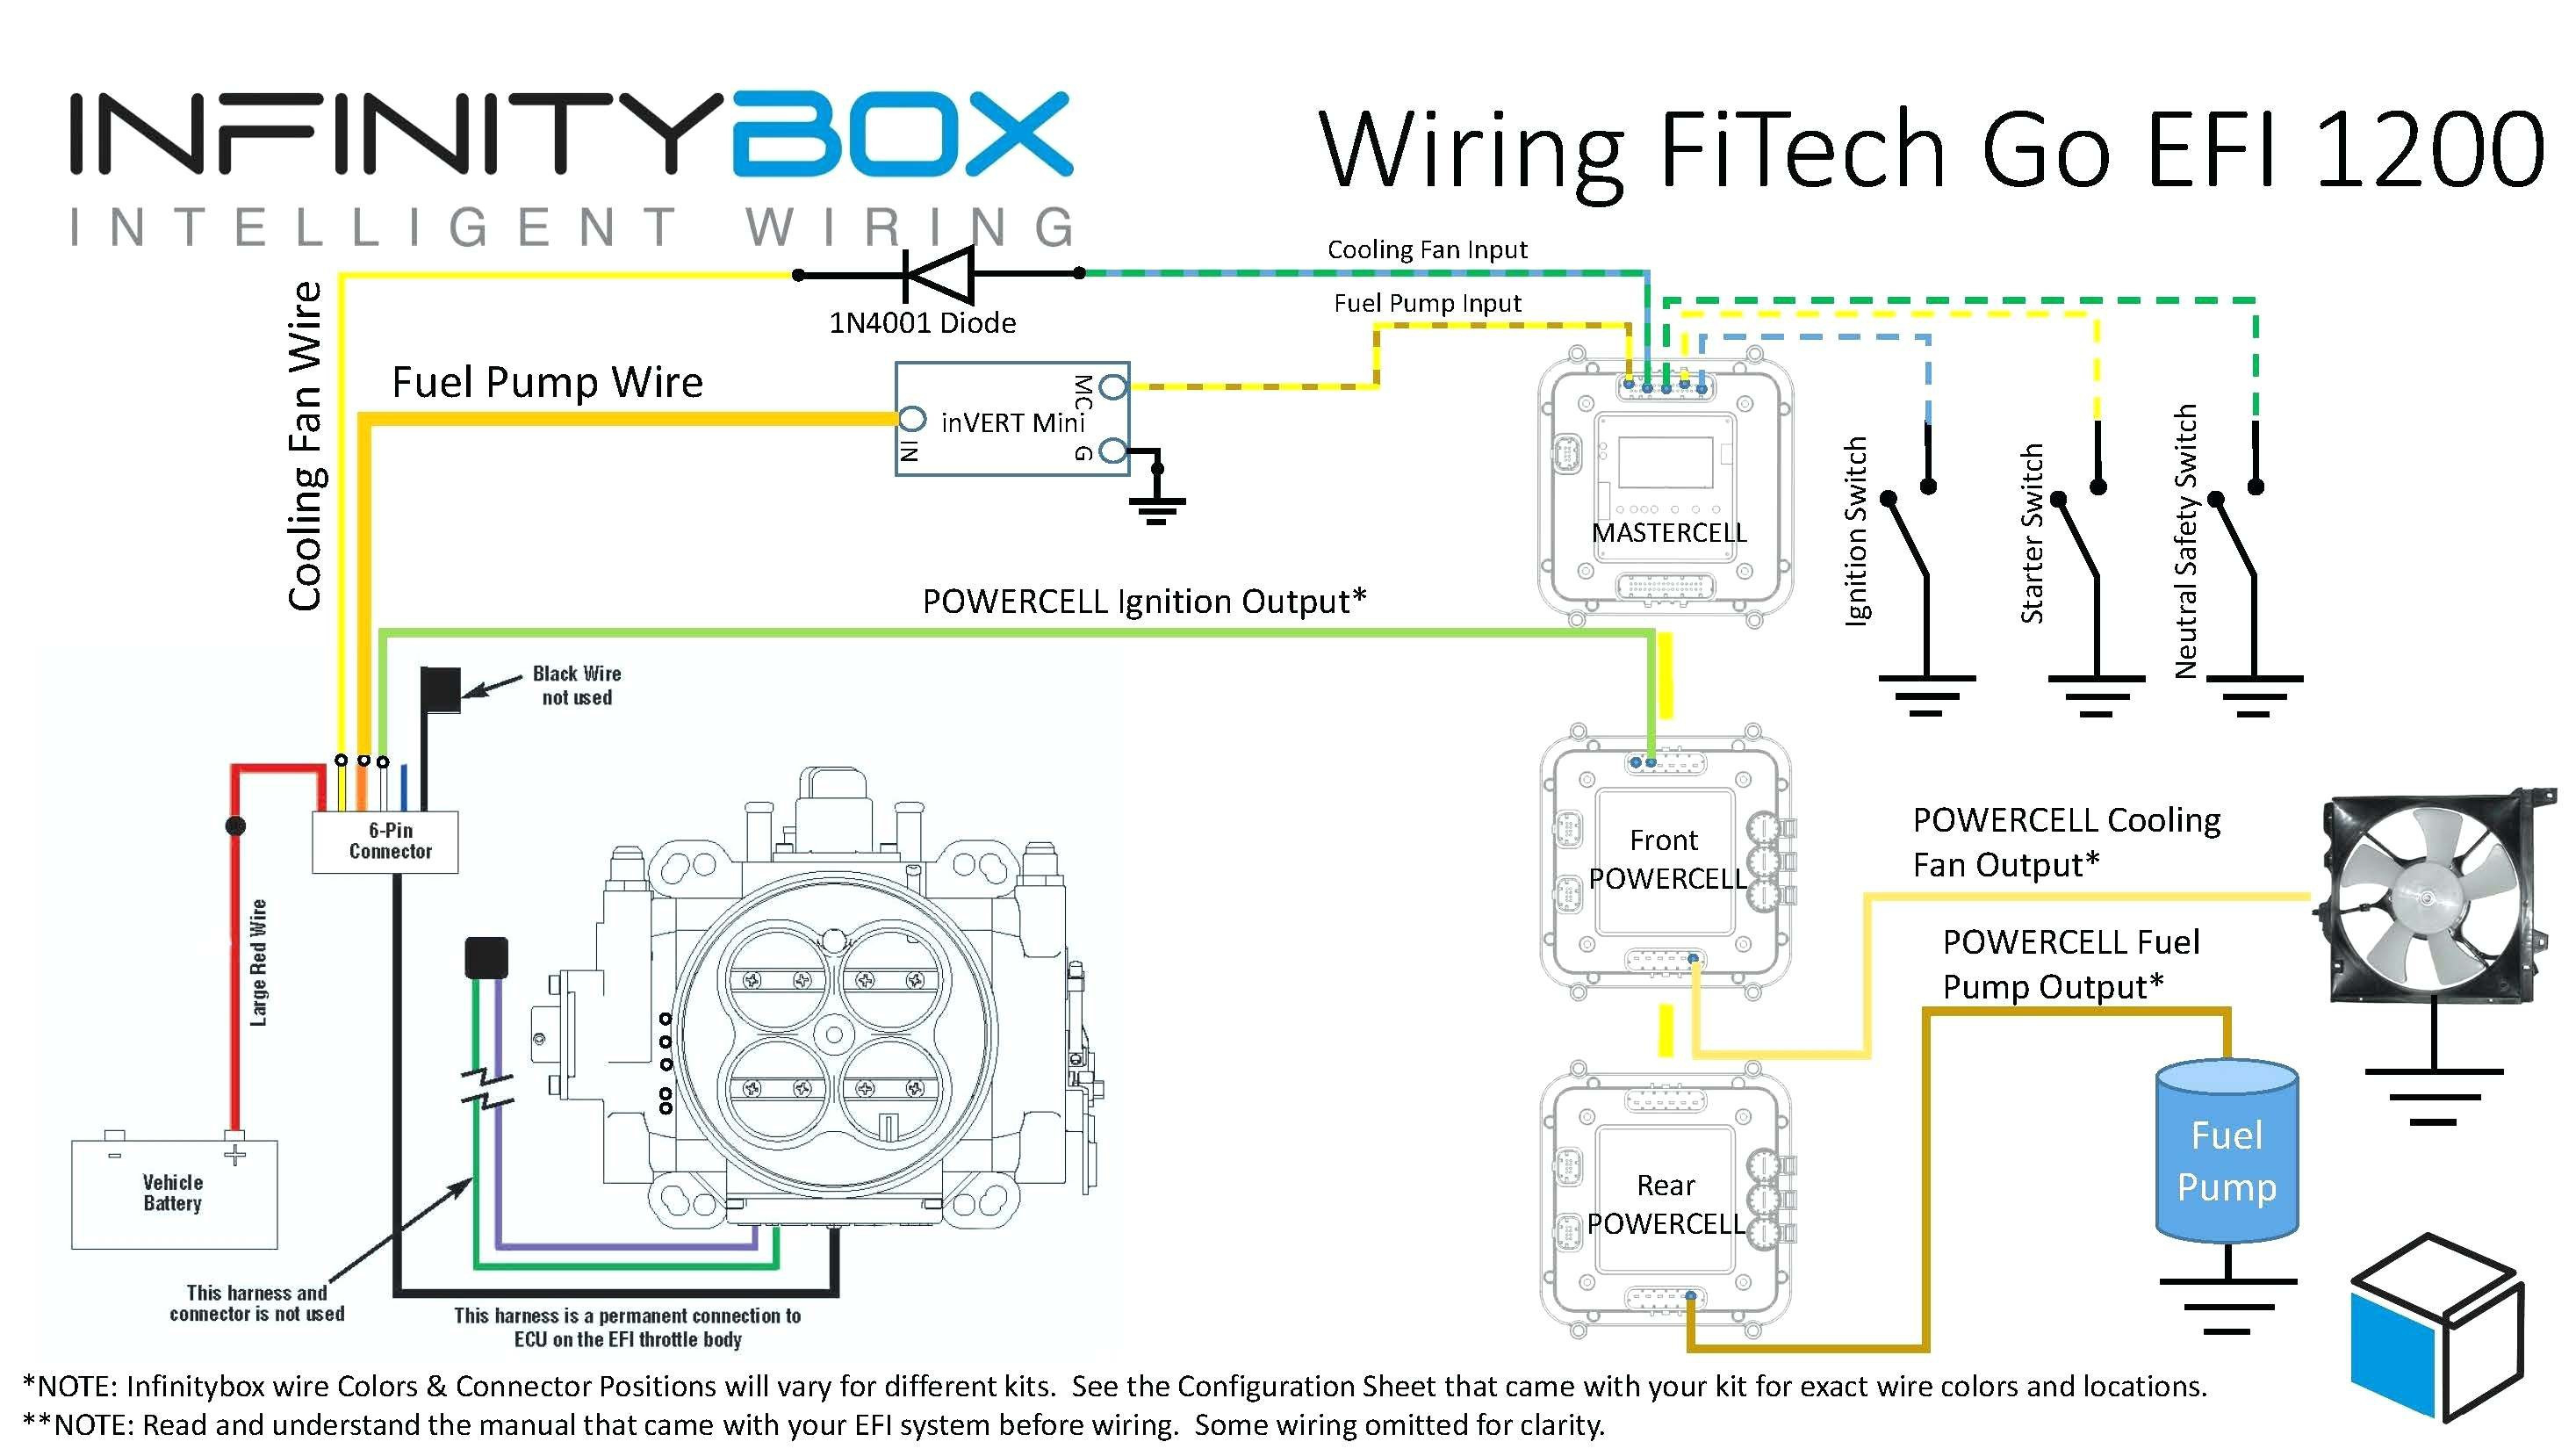 4 Prong Twist Lock Plug Wiring Diagram